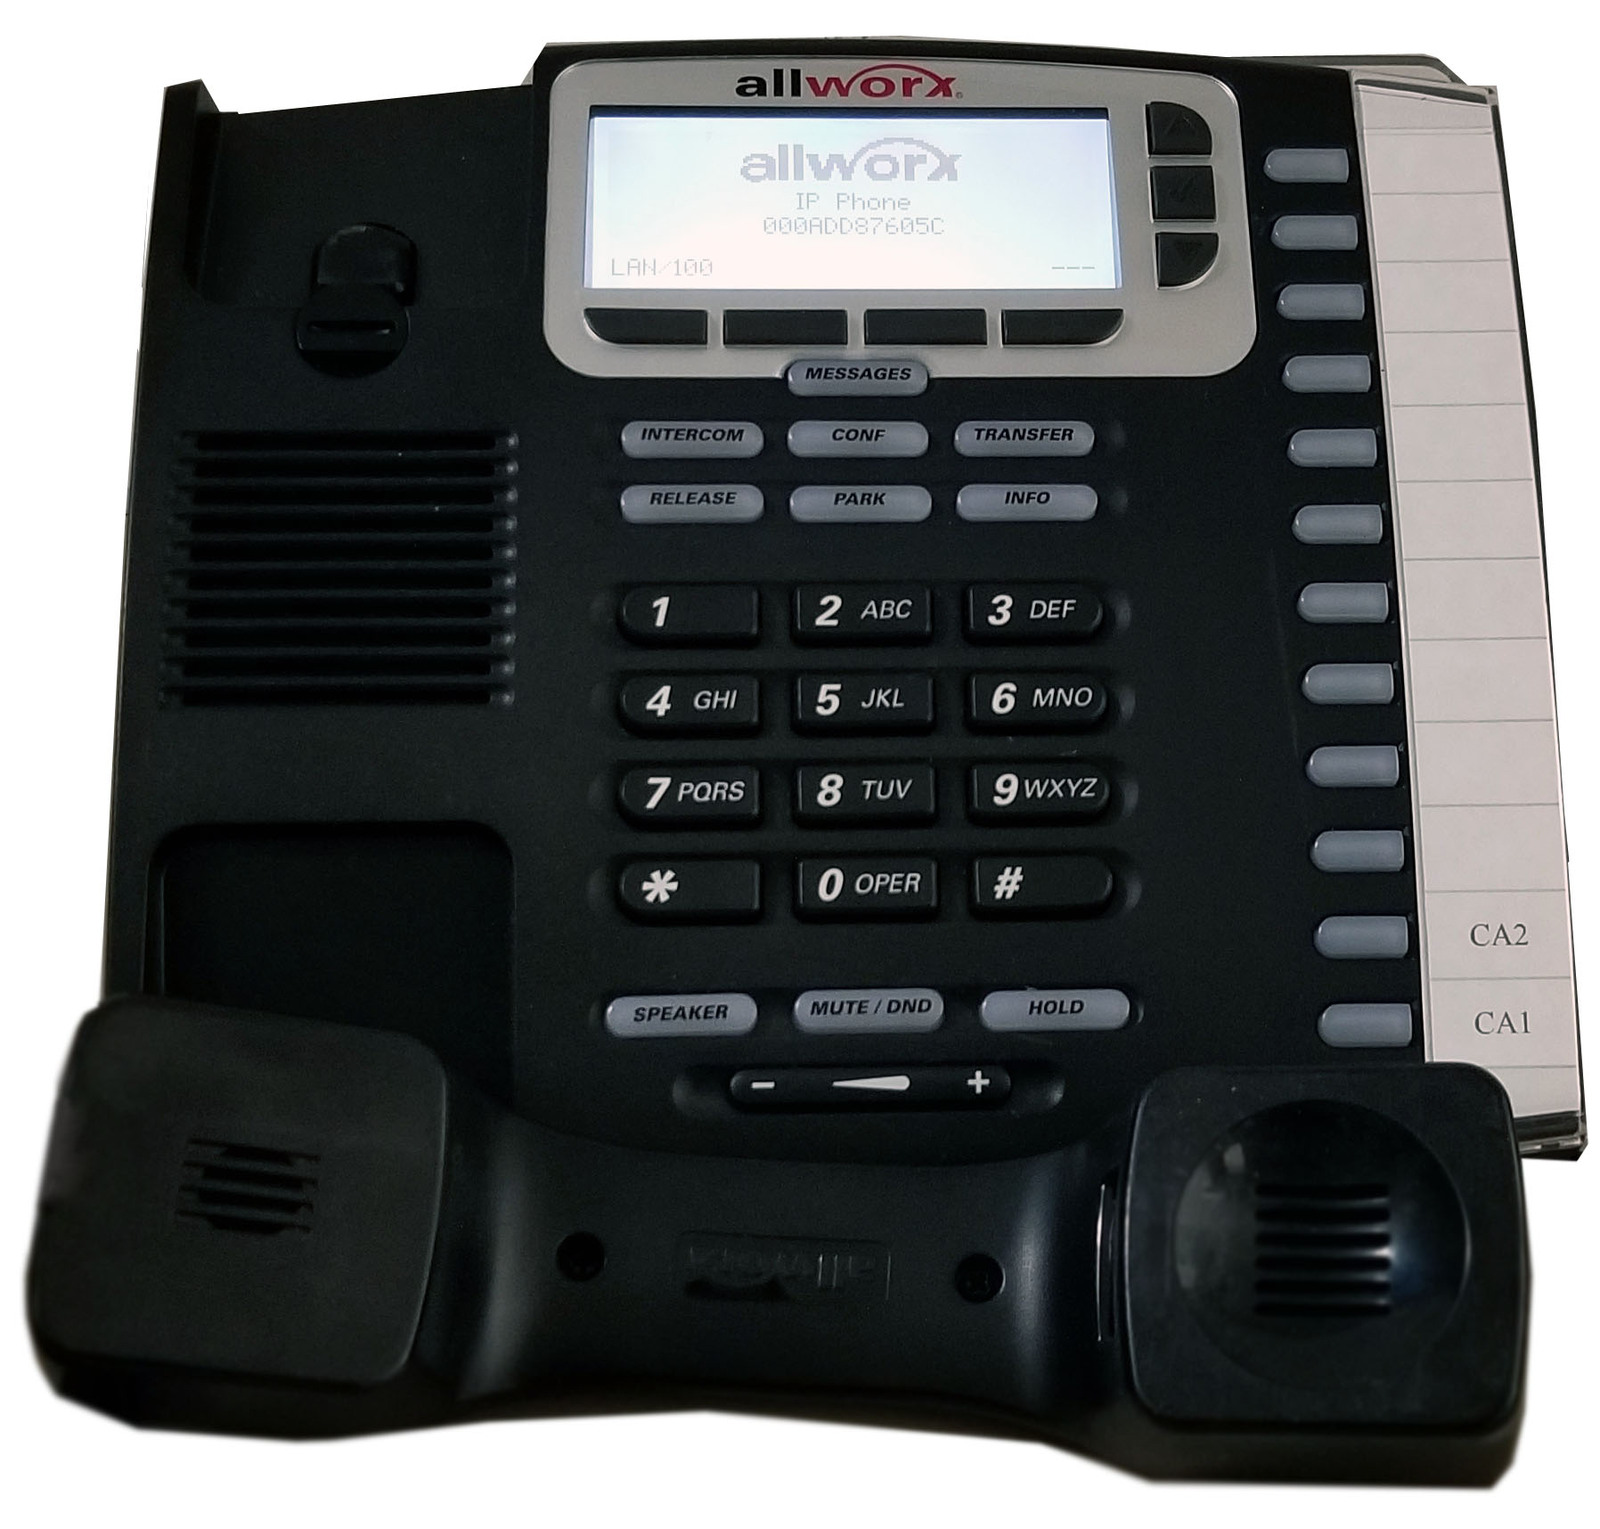 Allworx 9212L VoIP Phone With Power Over Ethernet (PoE) Bin:13